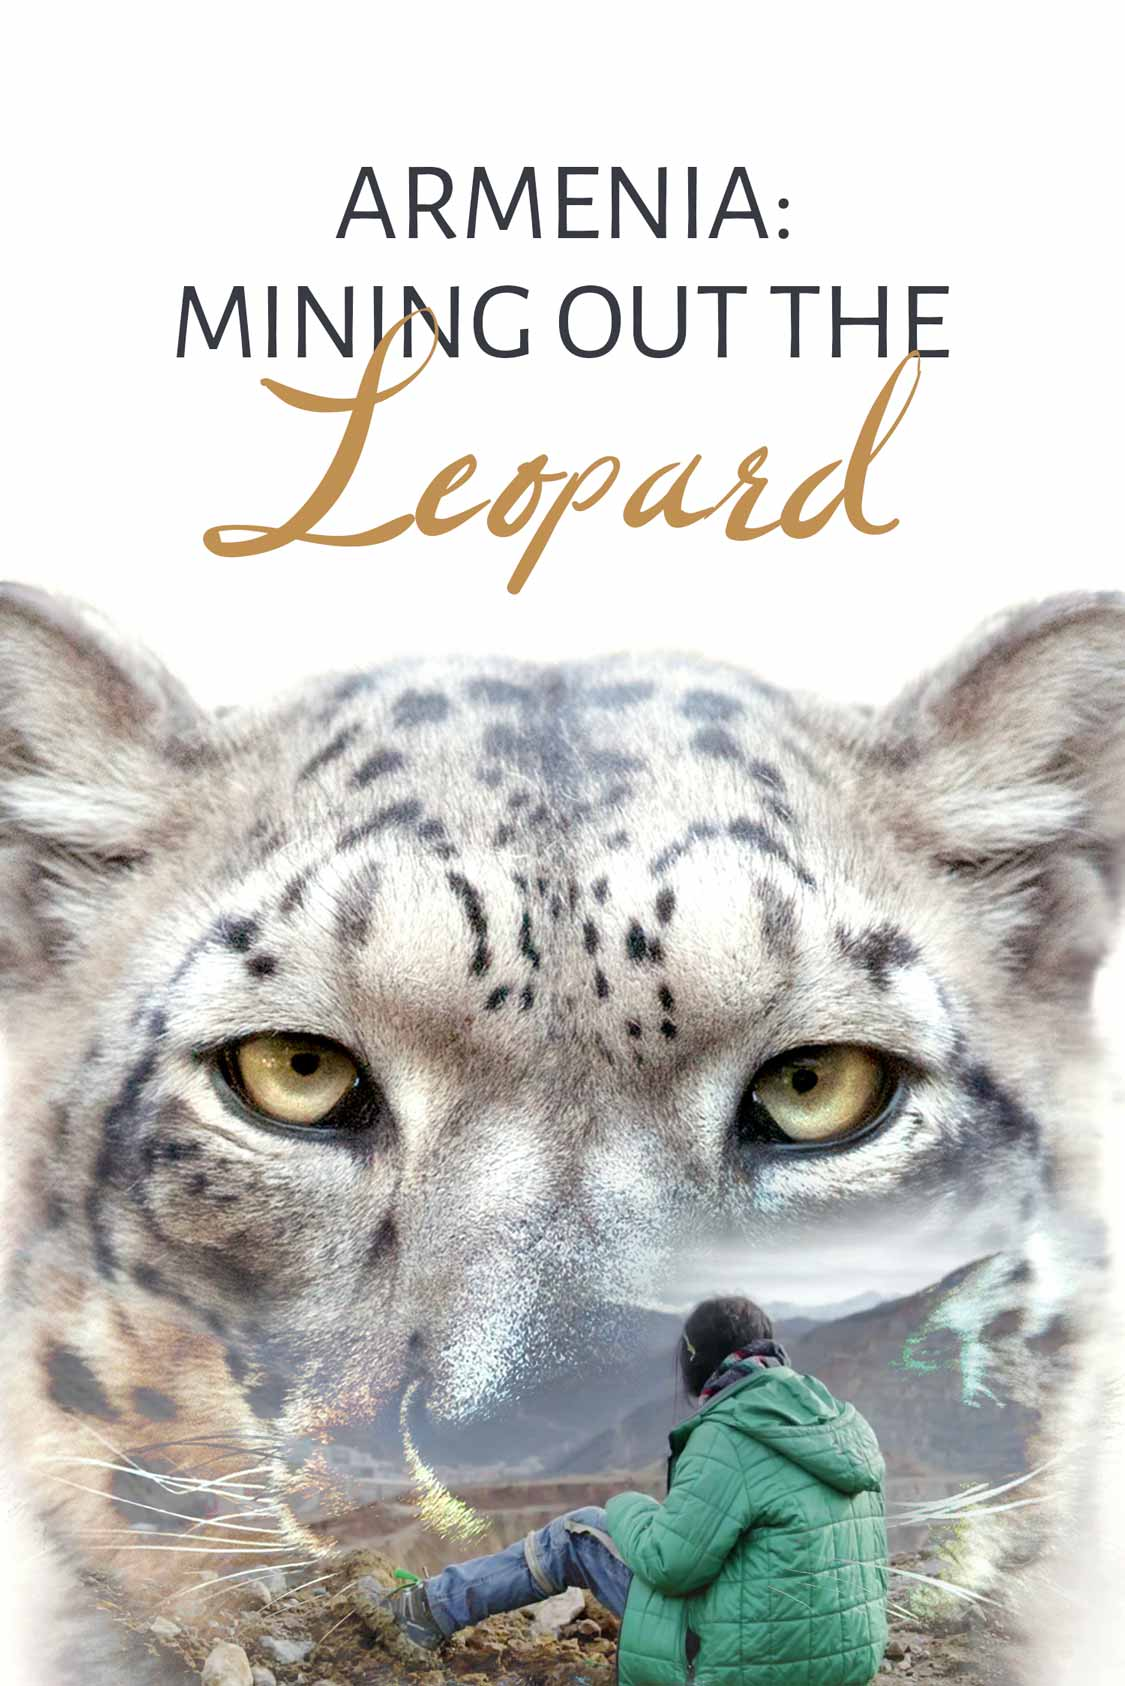 Armenia: Mining Out the Leopard